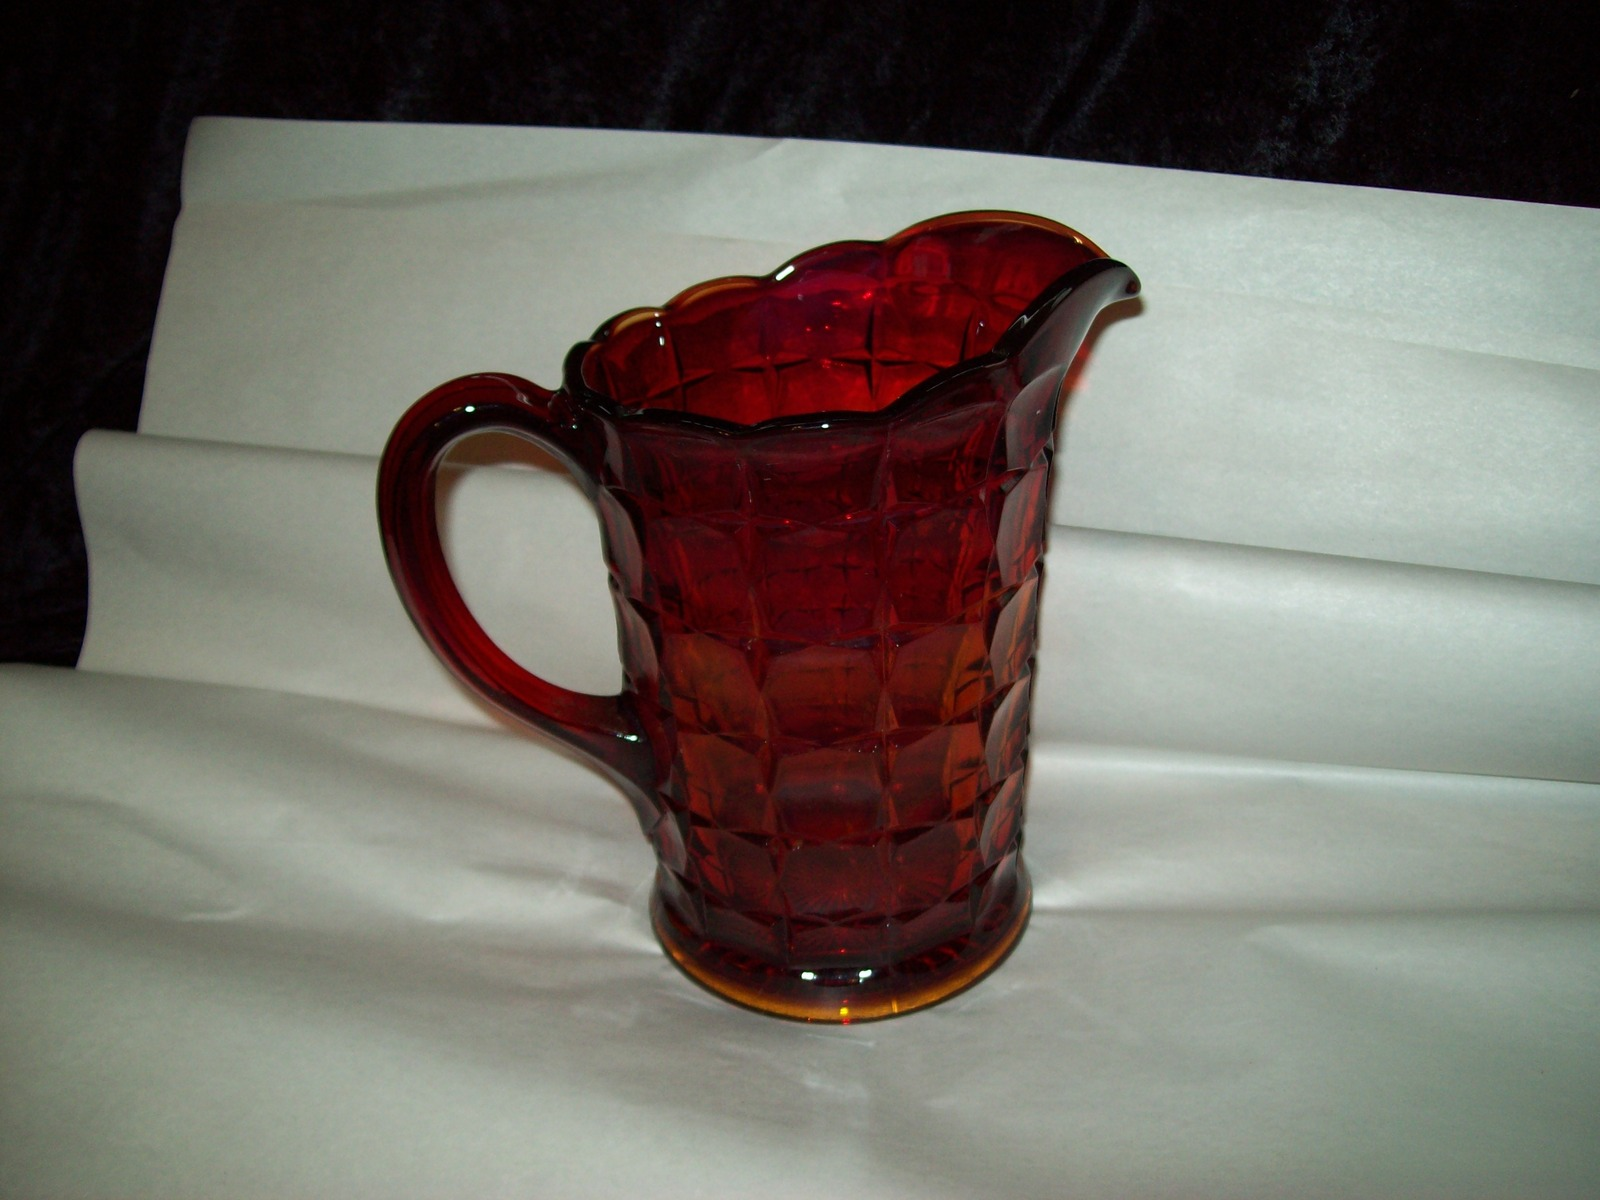 Indiana Glass Tiara Ruby Sunset Amberina Red Constellation Water Pitcher Vintage image 3